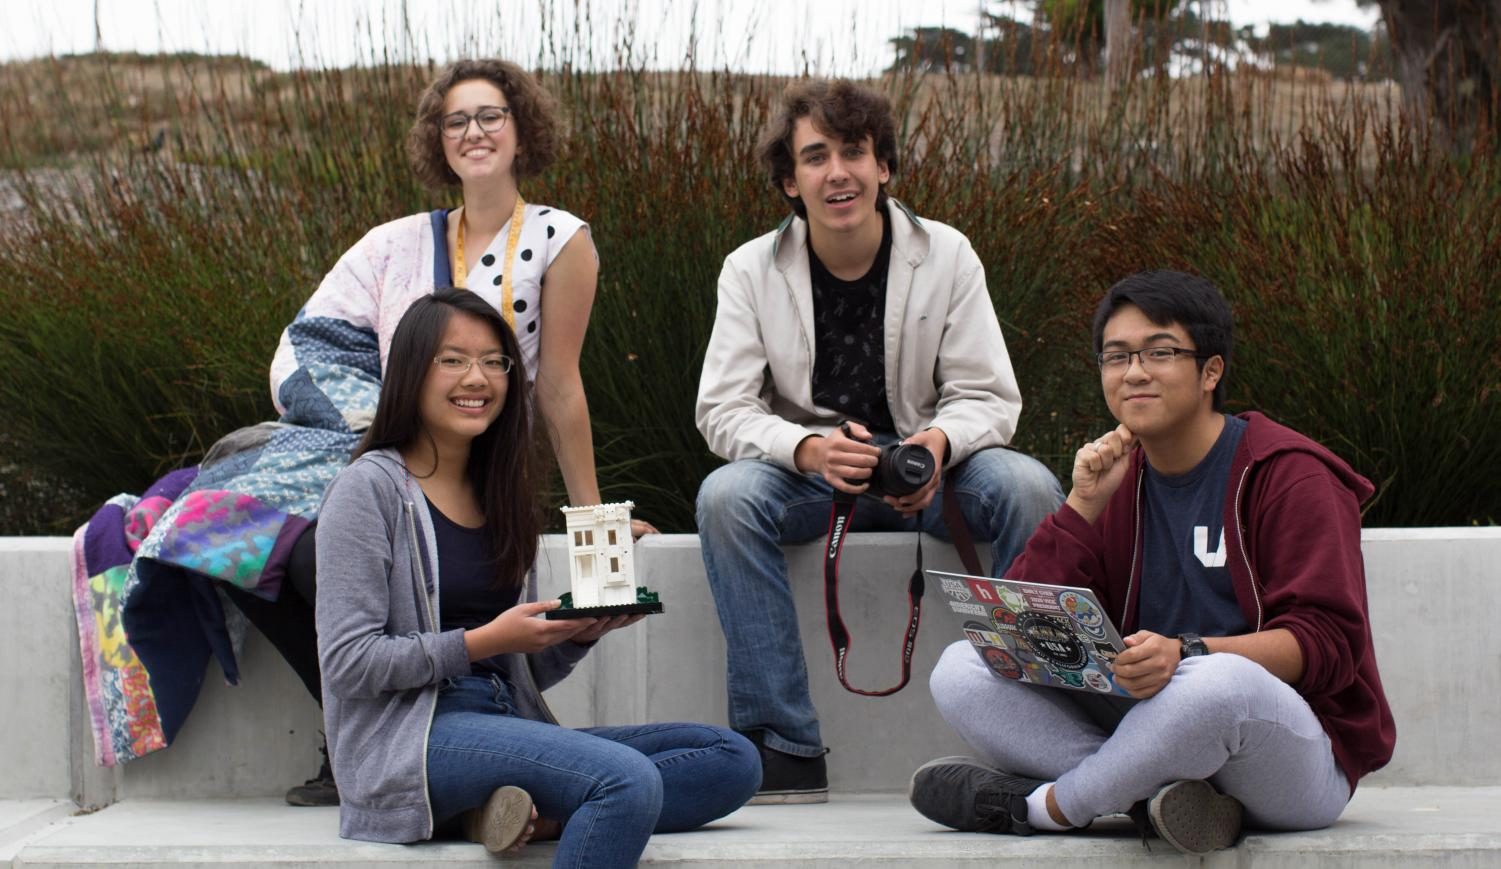 From left to right: Junior Ellie Reiff, senior Jasmine Liang, sophomore Sebastian Kaplan, and junior Alex Ruiz.